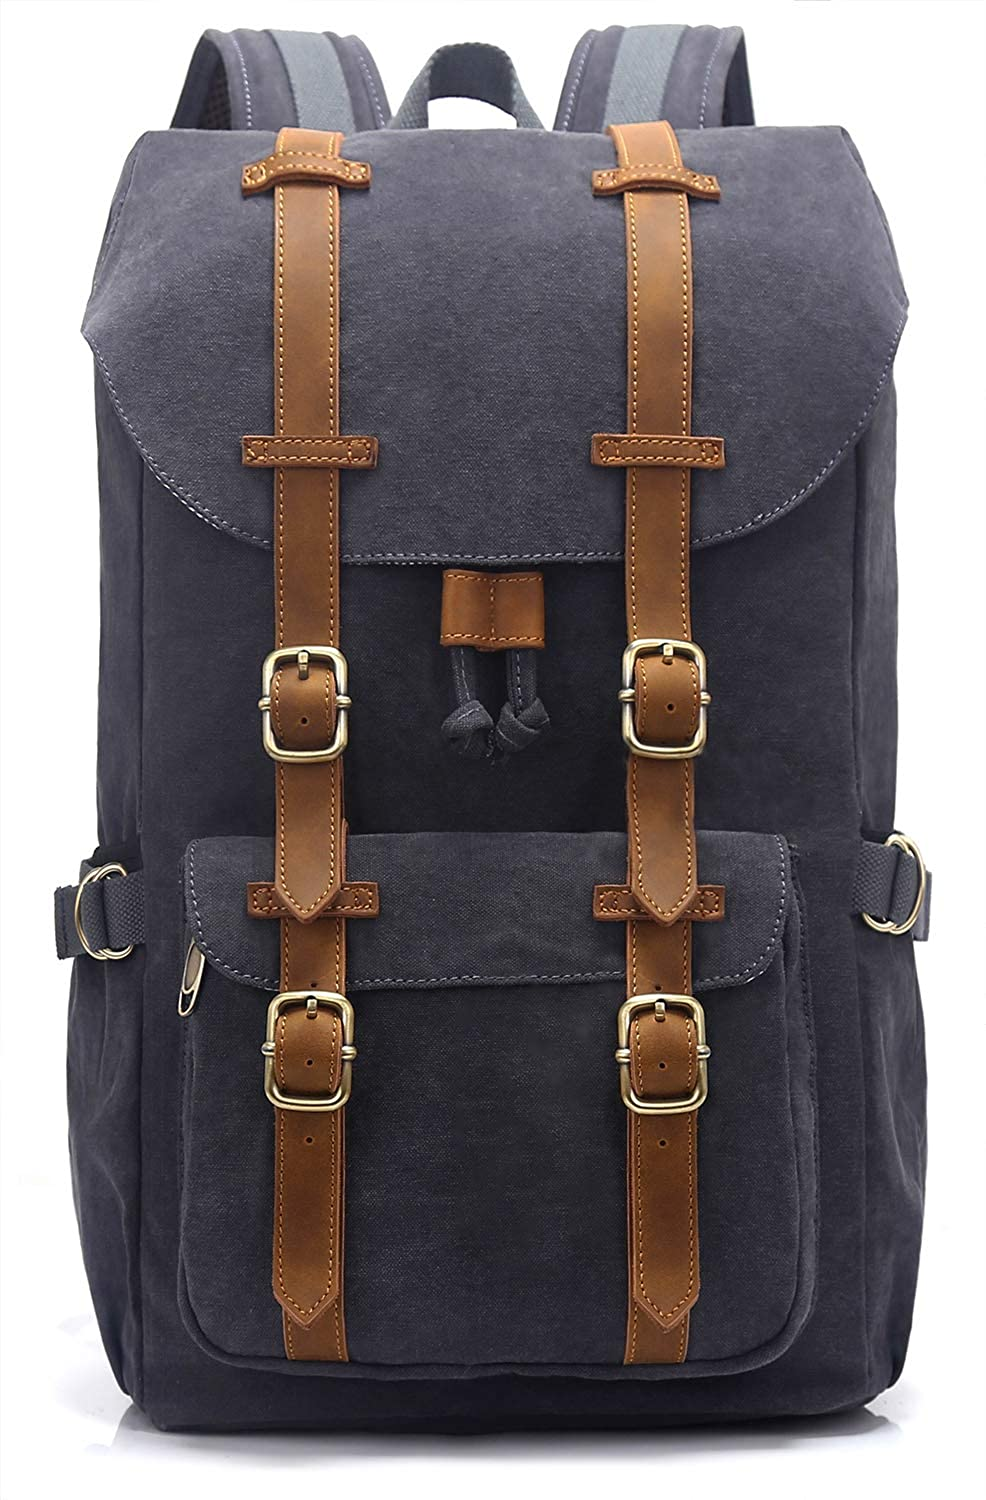 EverVanz Canvas Backpack for Travel Hiking Casual School Daypack Fits 15